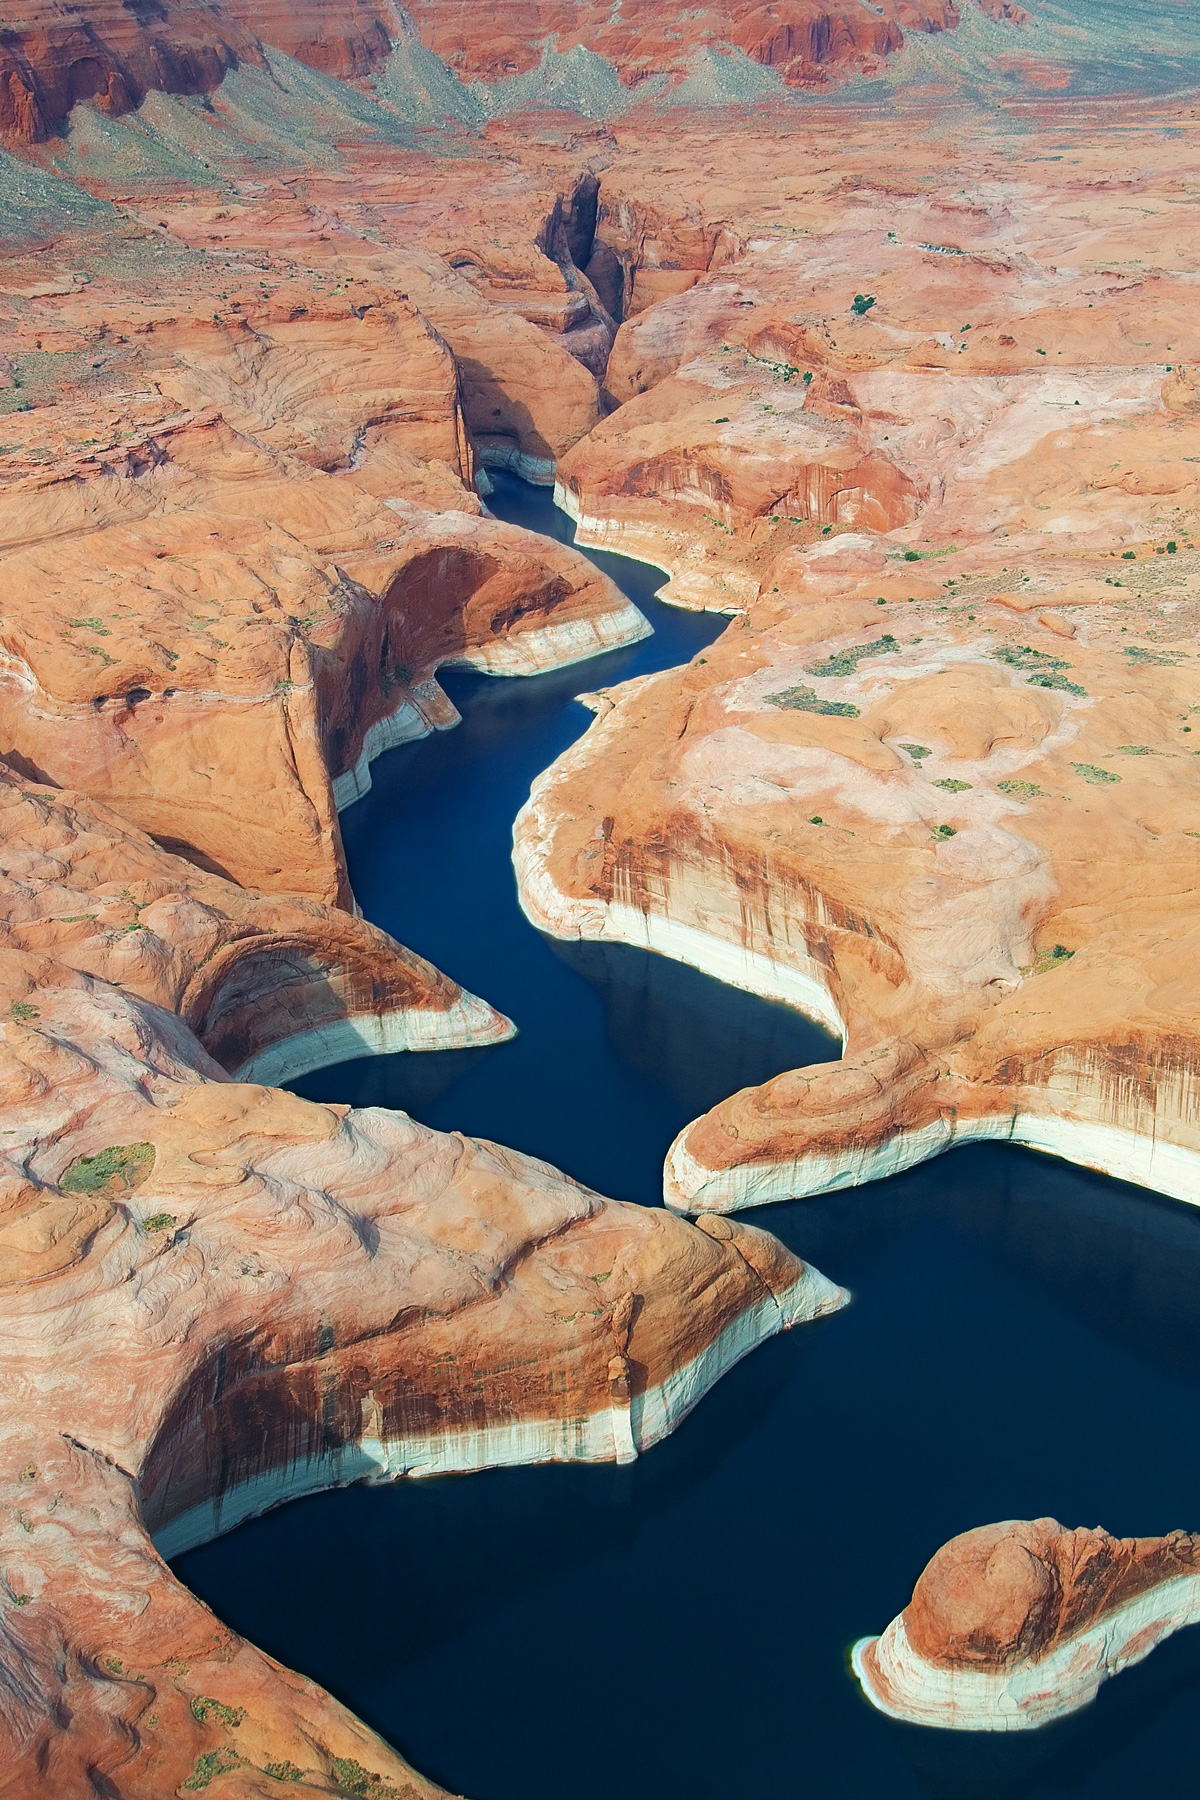 Lake Powell, United-States Photo by Rainer Krienke